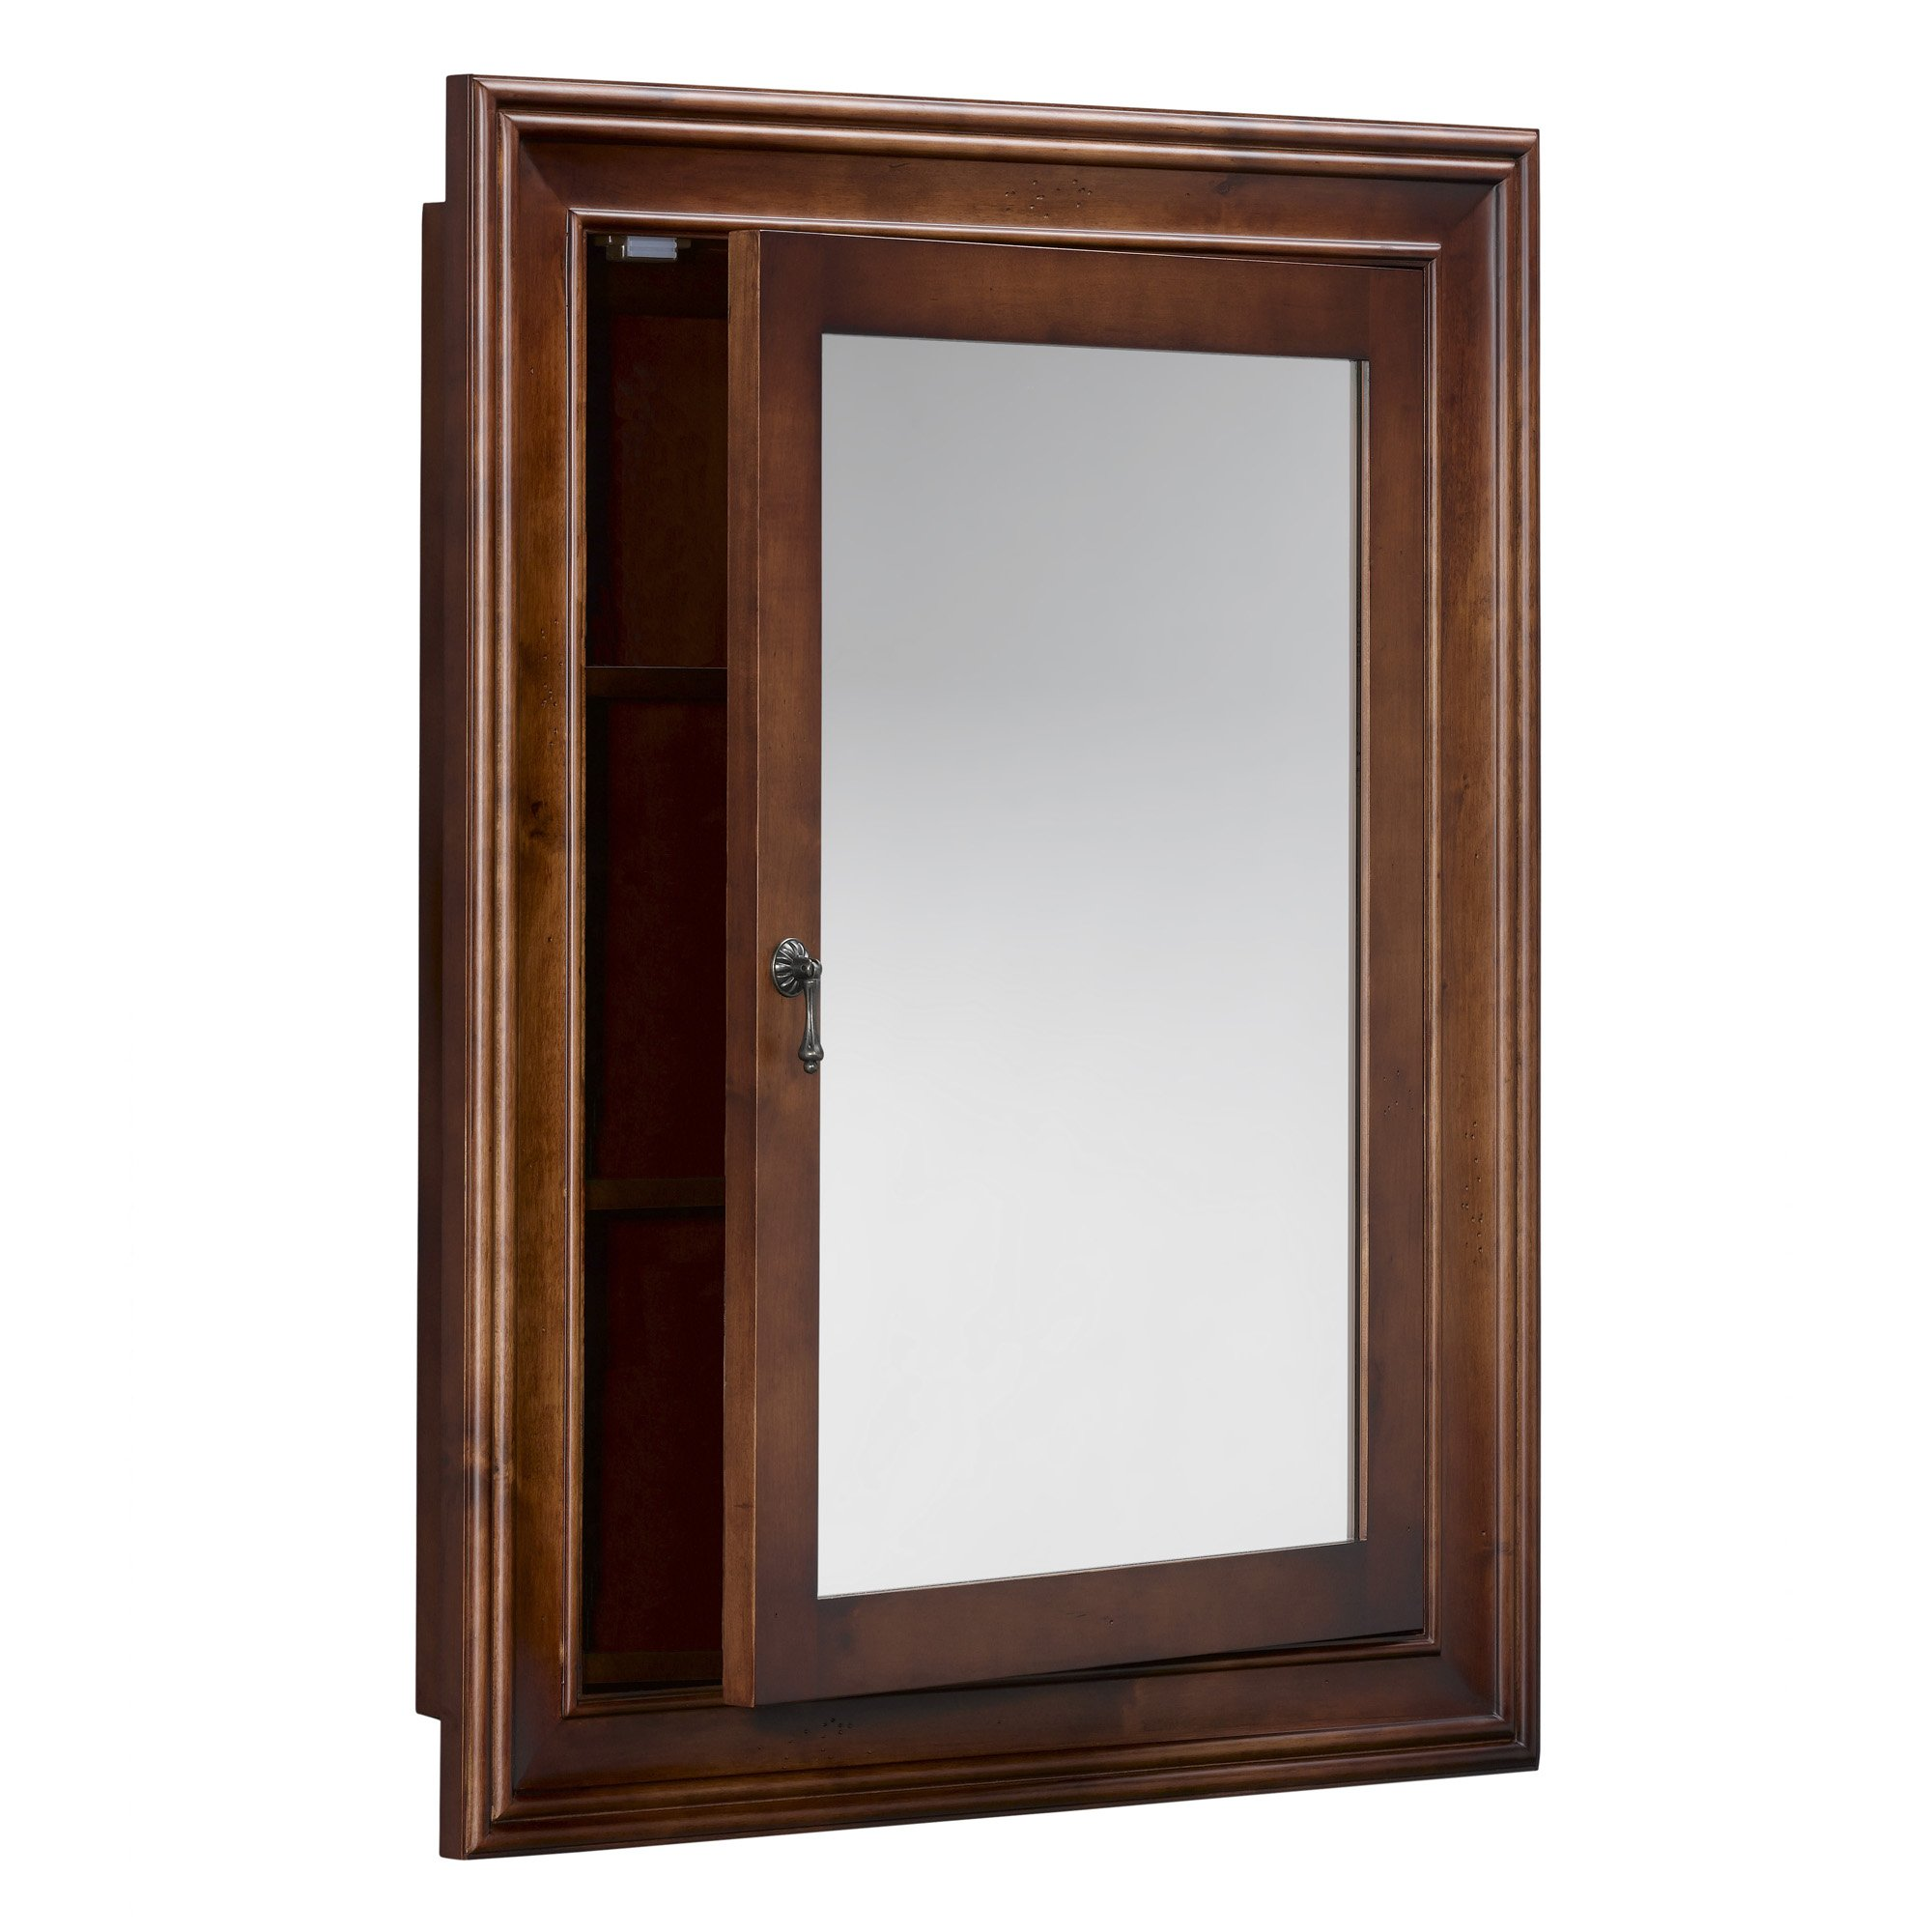 RONBOW Henry 27'' x 34'' Traditional Solid Wood Frame Bathroom Medicine Cabinet with 2 Mirrors and 2 Cabinet Shelves in Colonial Cherry 611027-F11